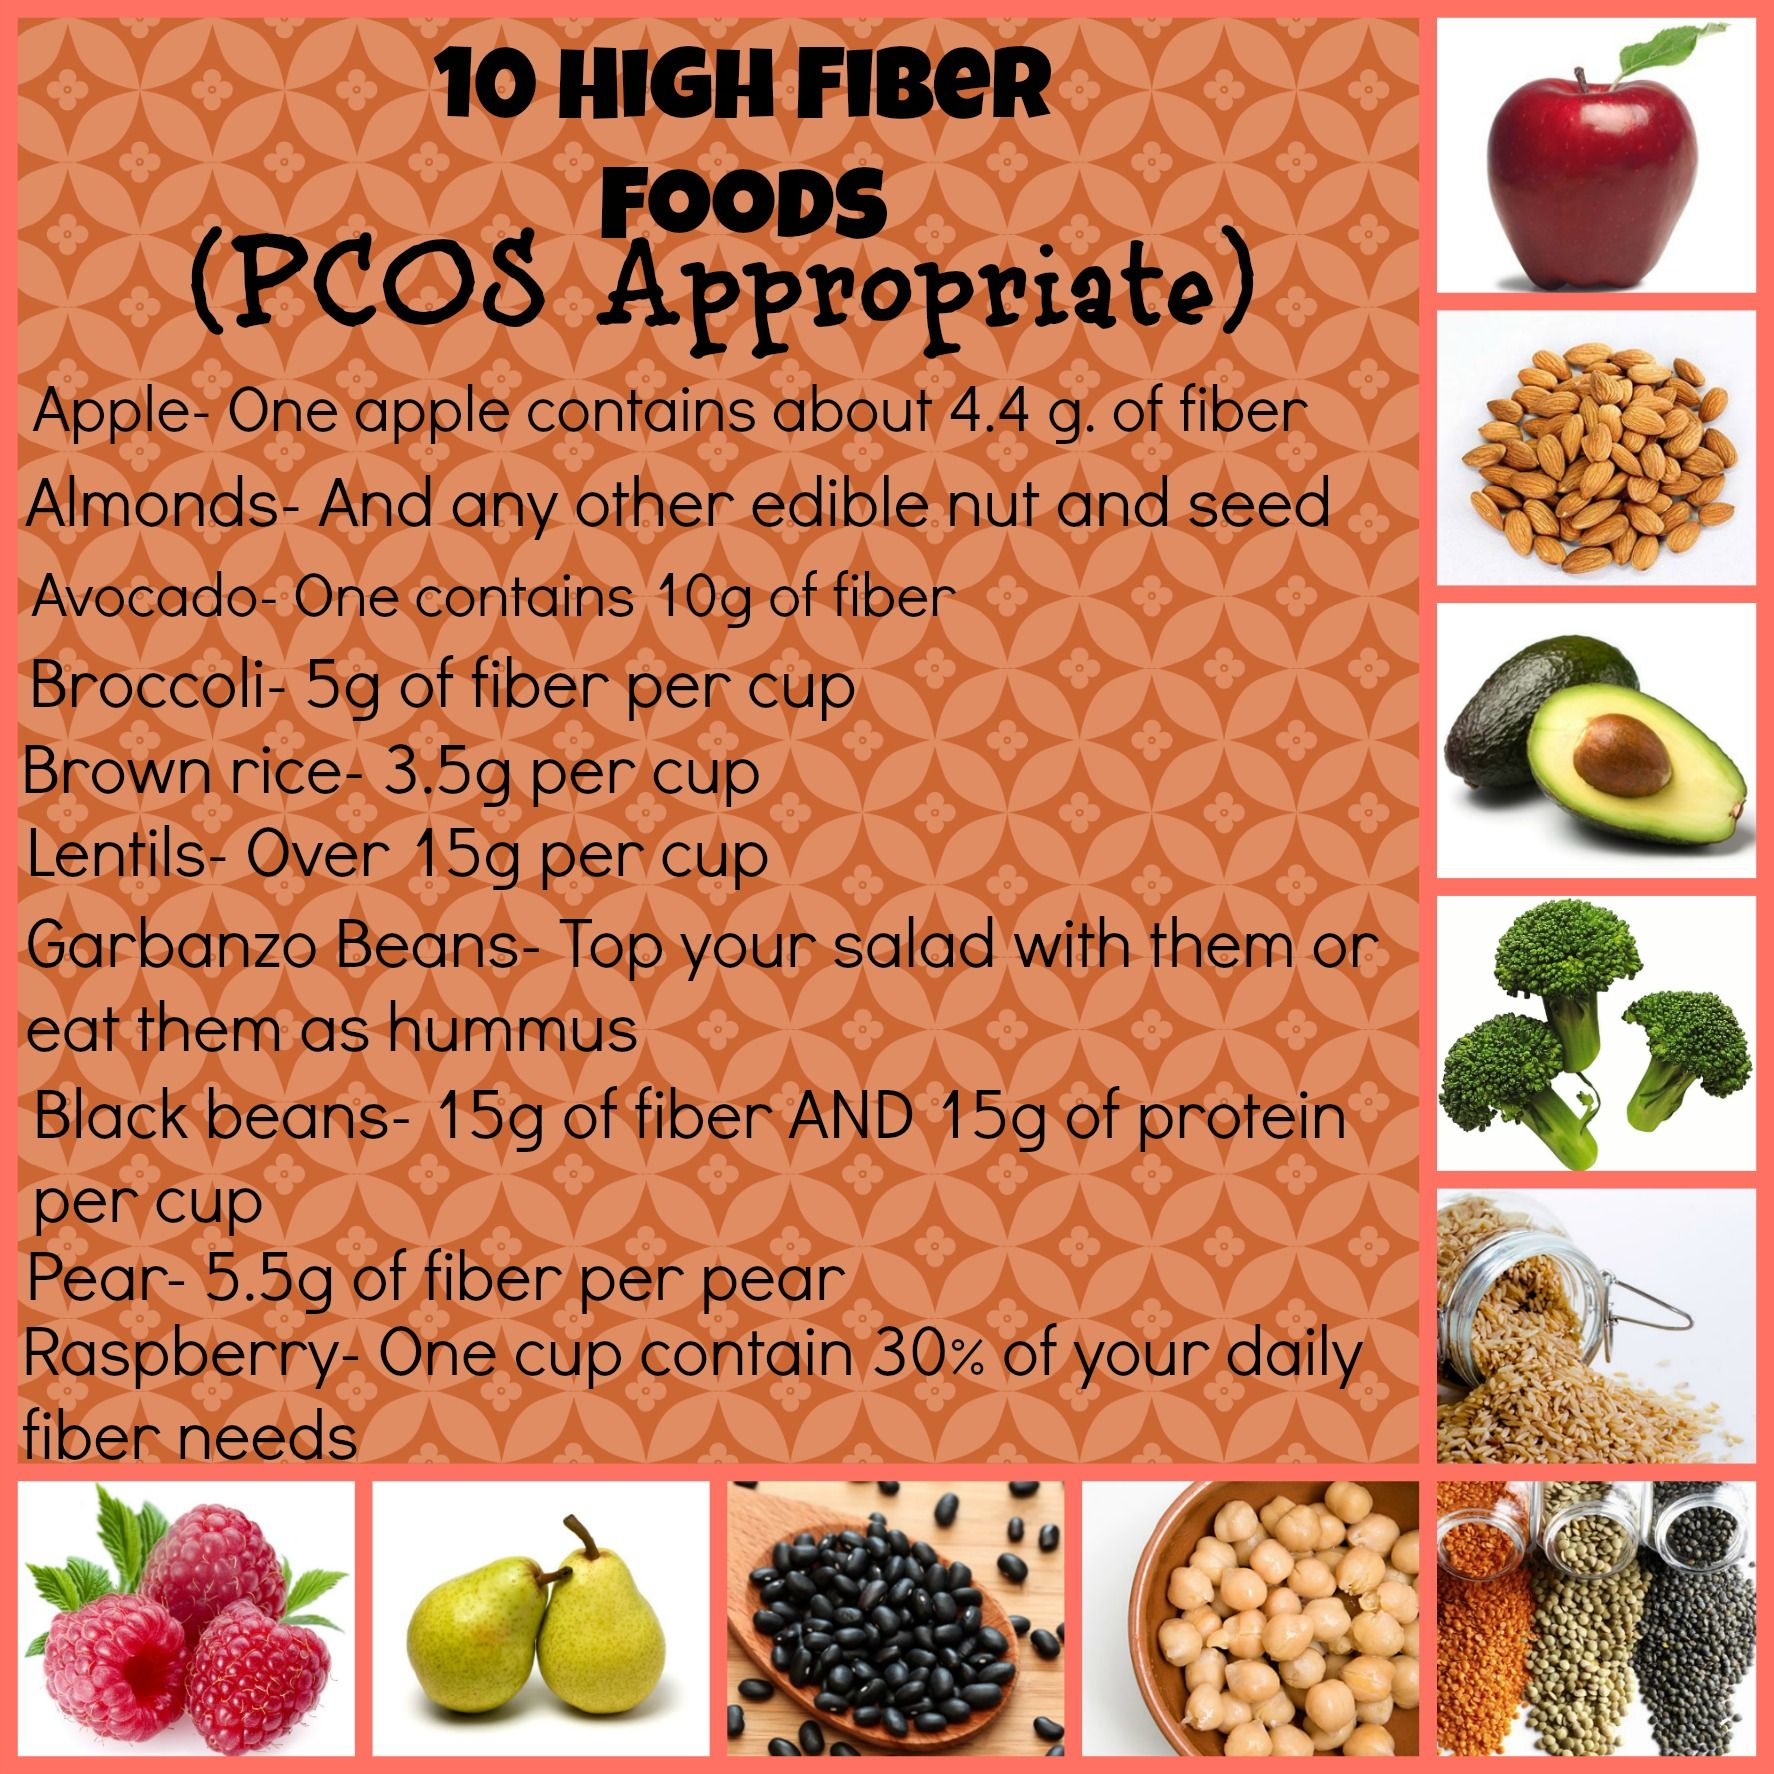 Benefits of High Fiber